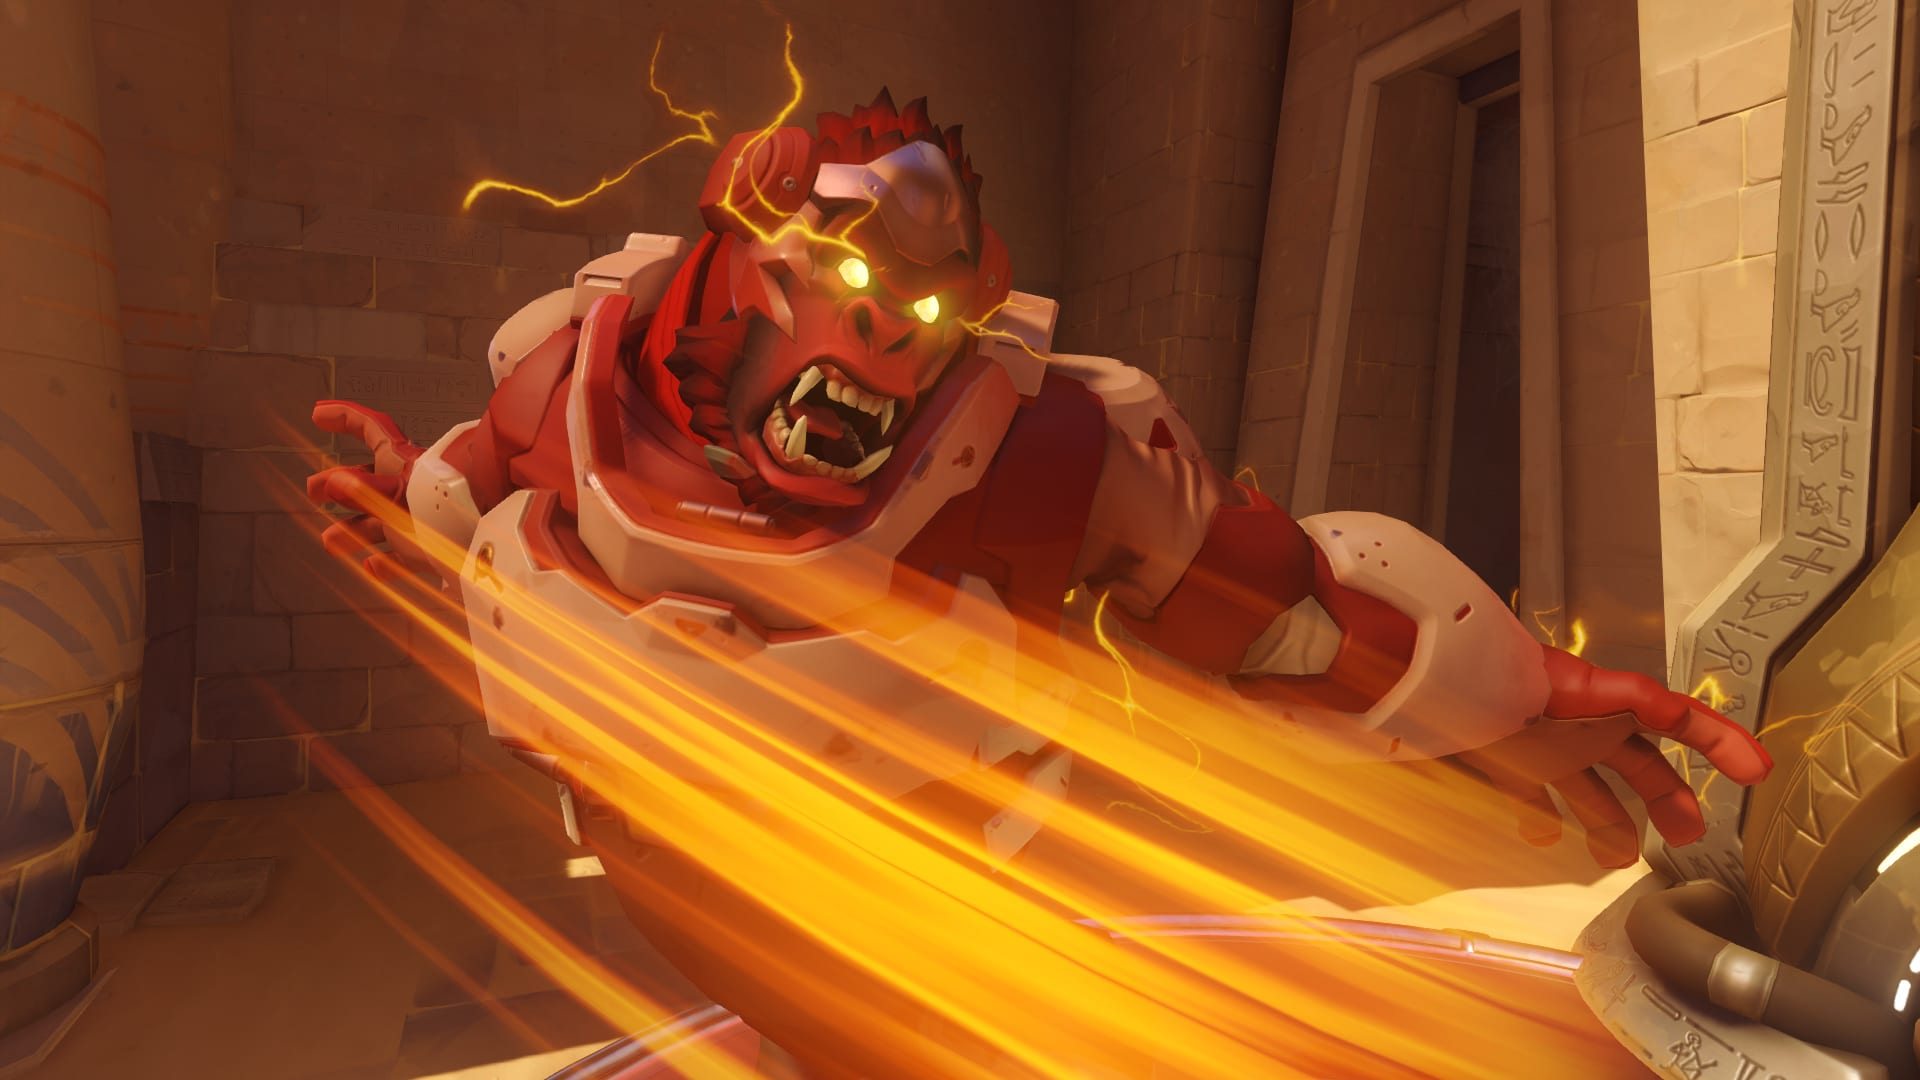 Creator DarwinStreams has built an Overwatch fighting game called OverFighter in the Workshop.